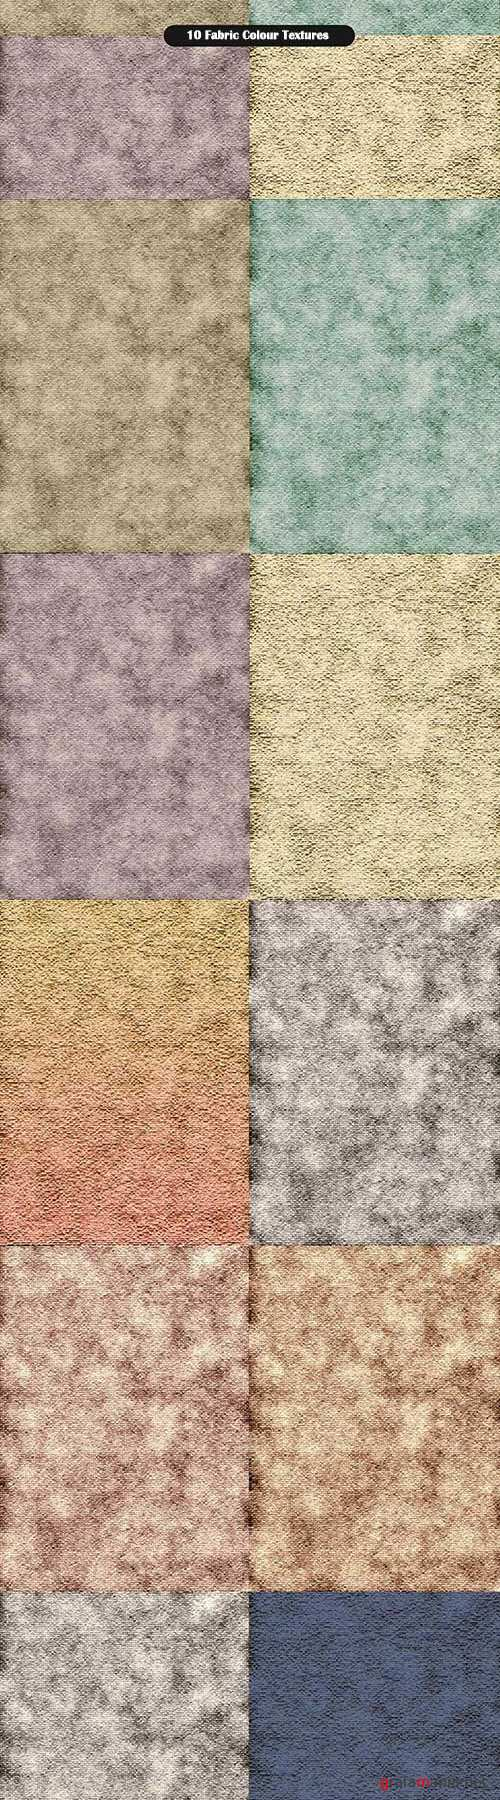 10 Fabric Colour Textures